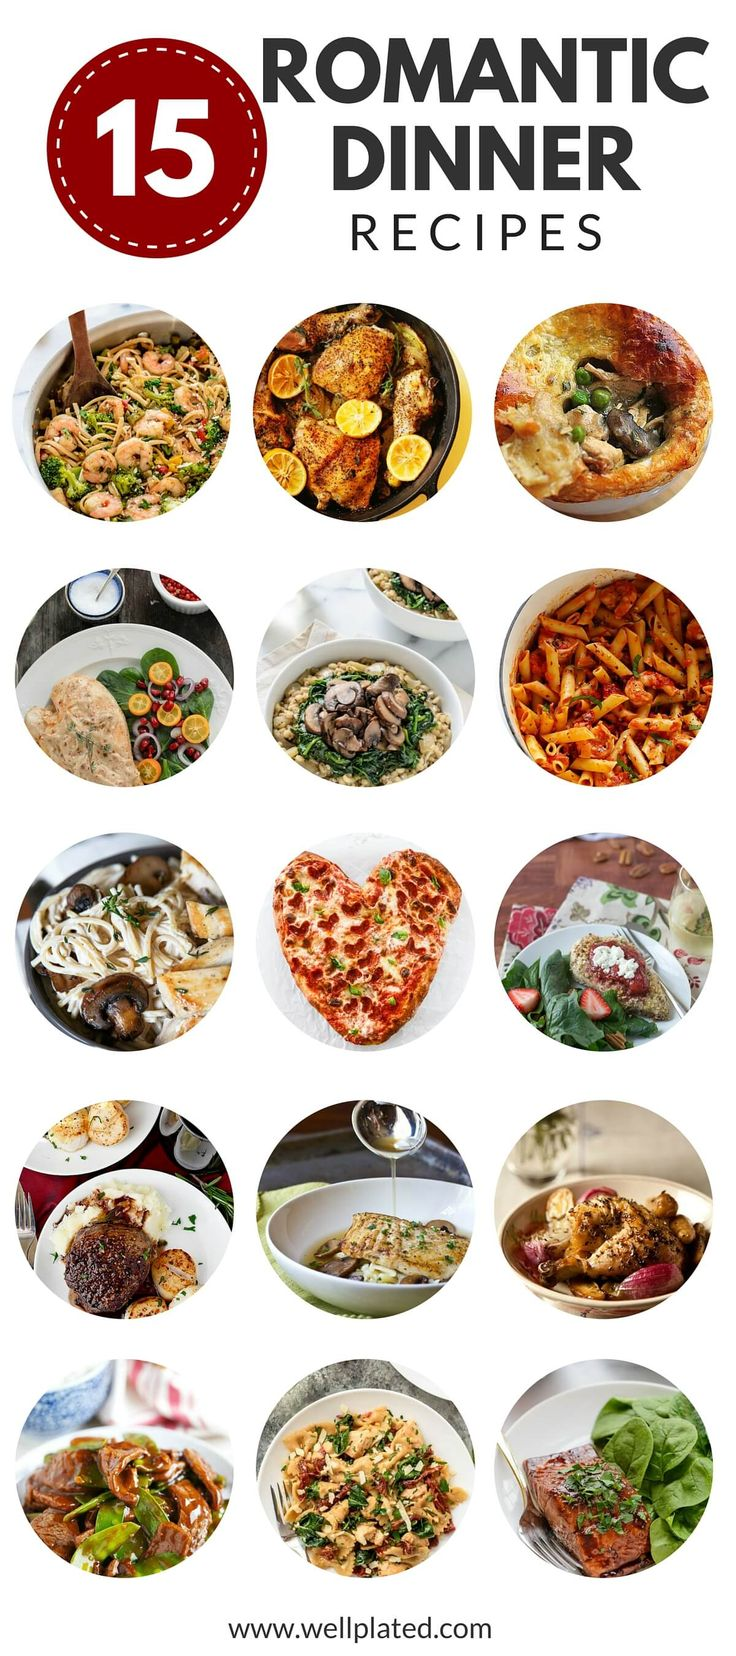 15 Date Night Dinners. Skip the crowd and expense of going out and try one of these easy, romantic dinners, perfect for a special night in! www.wellplated.com